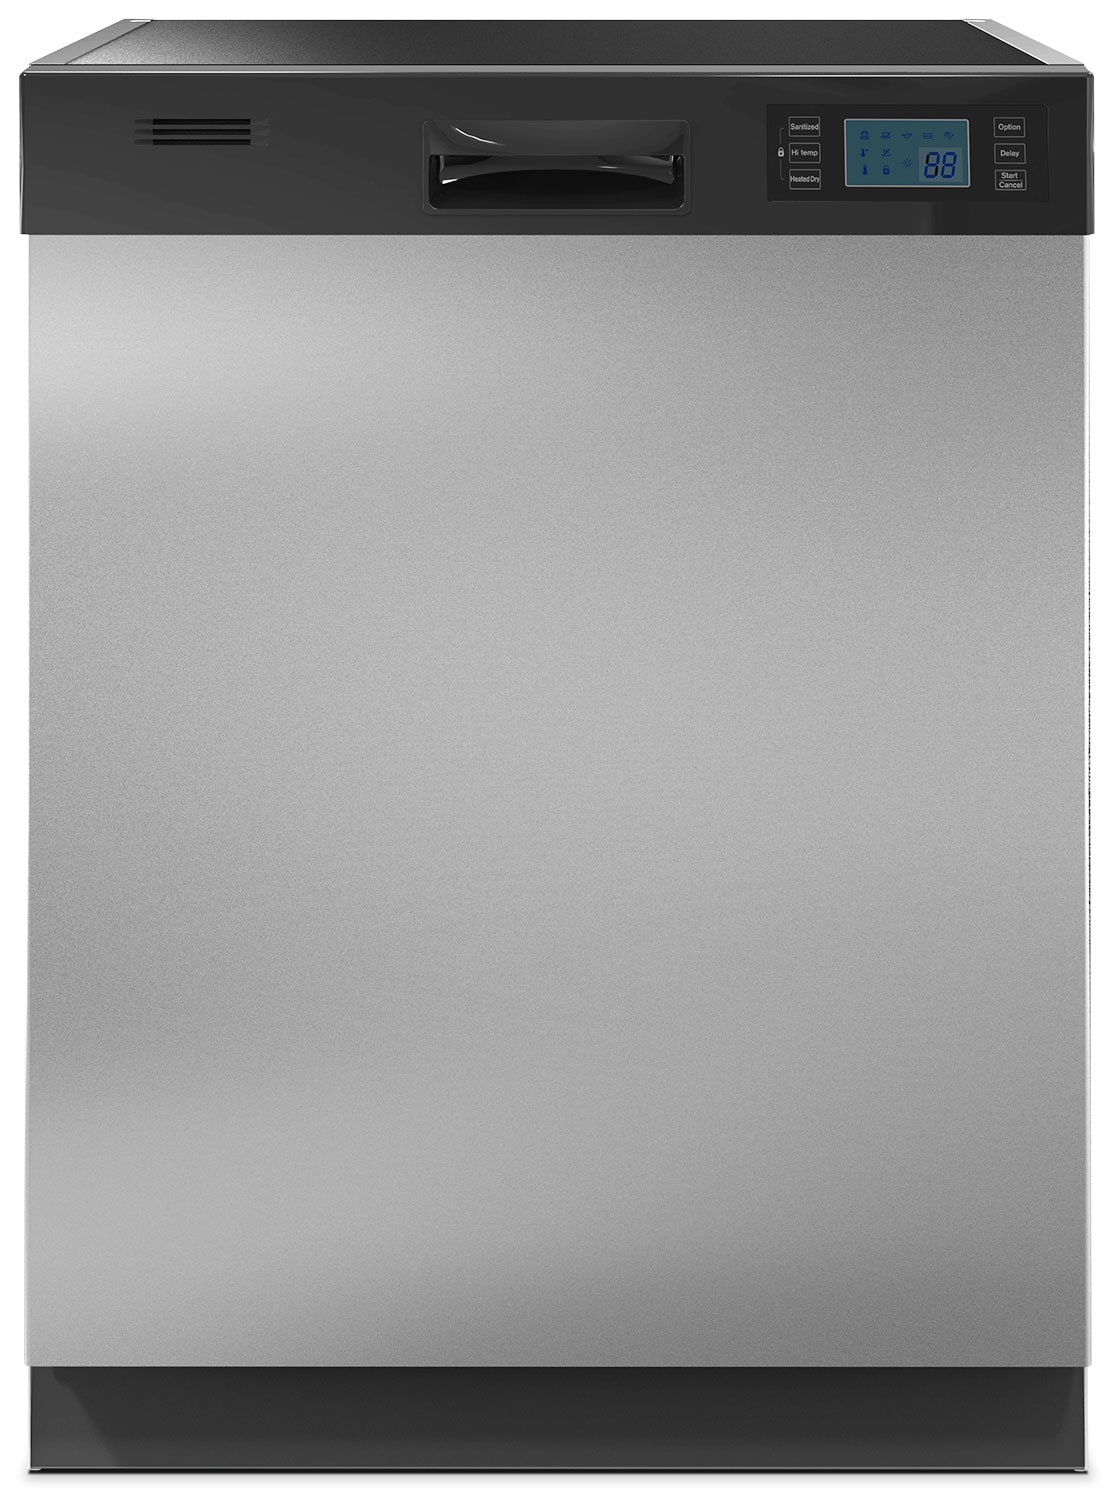 Midea Built-In Dishwasher – WQP12-9373H.1-US